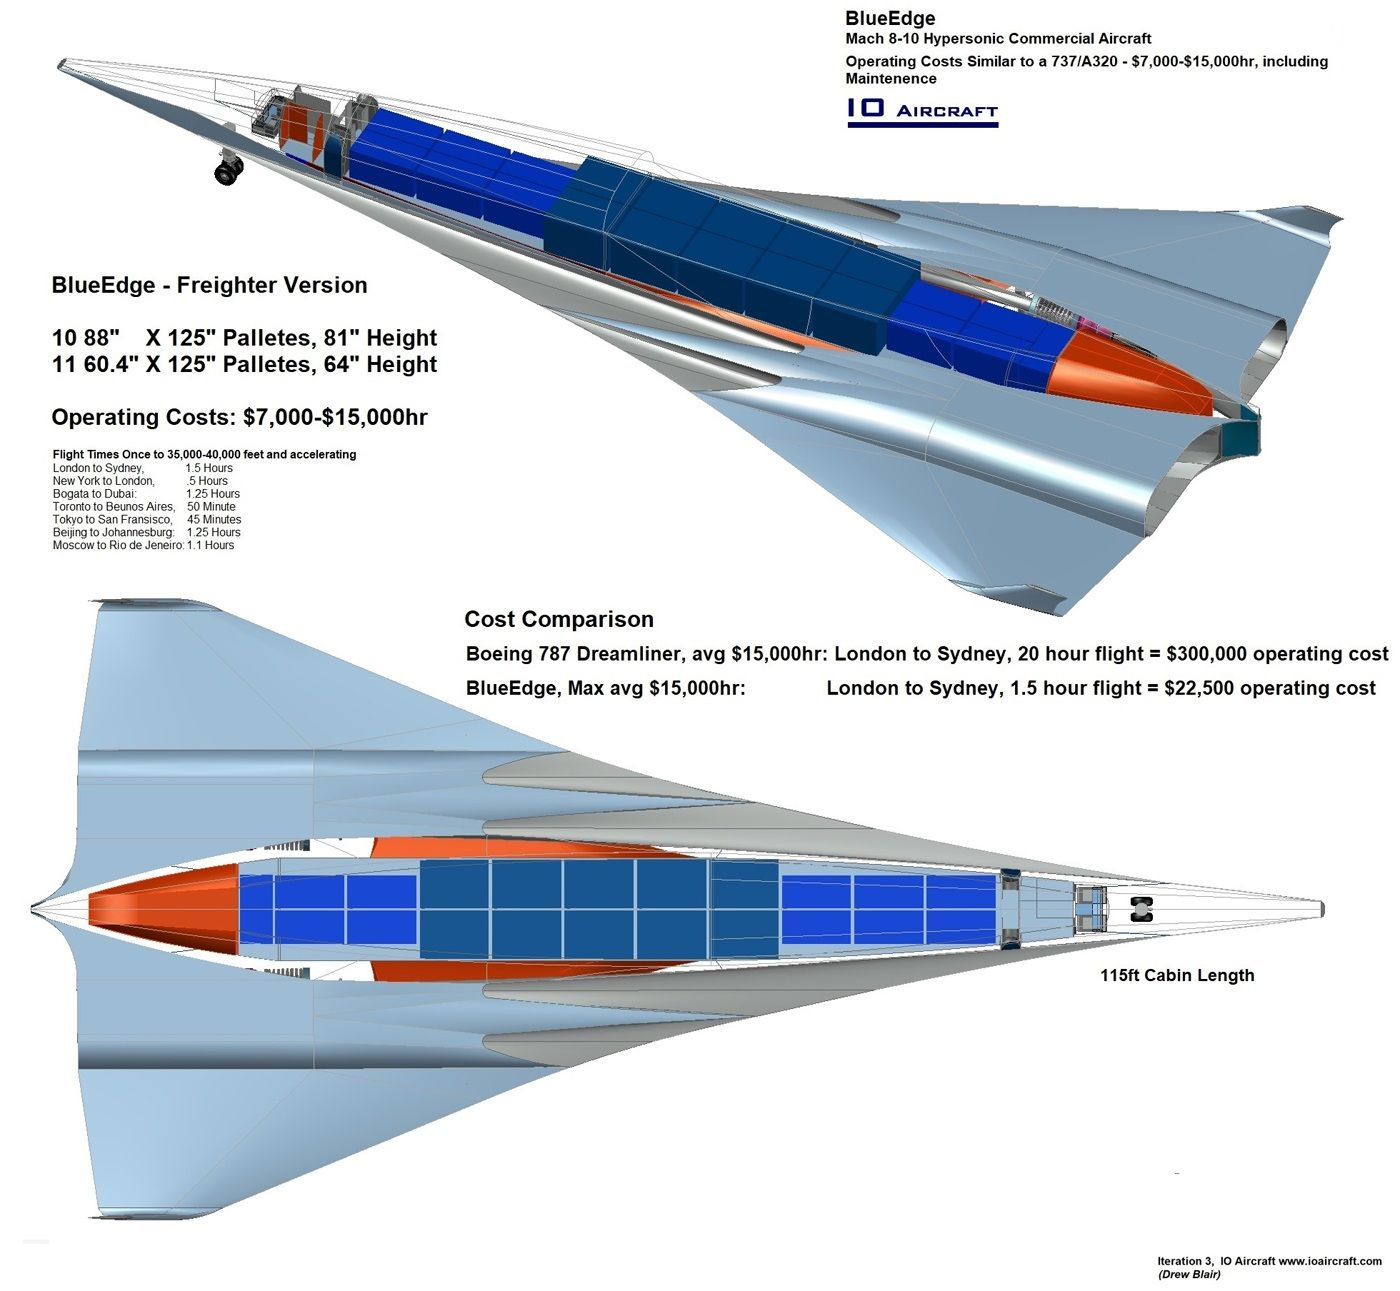 hypersonic commercial plane, hypersonic commercial aircraft